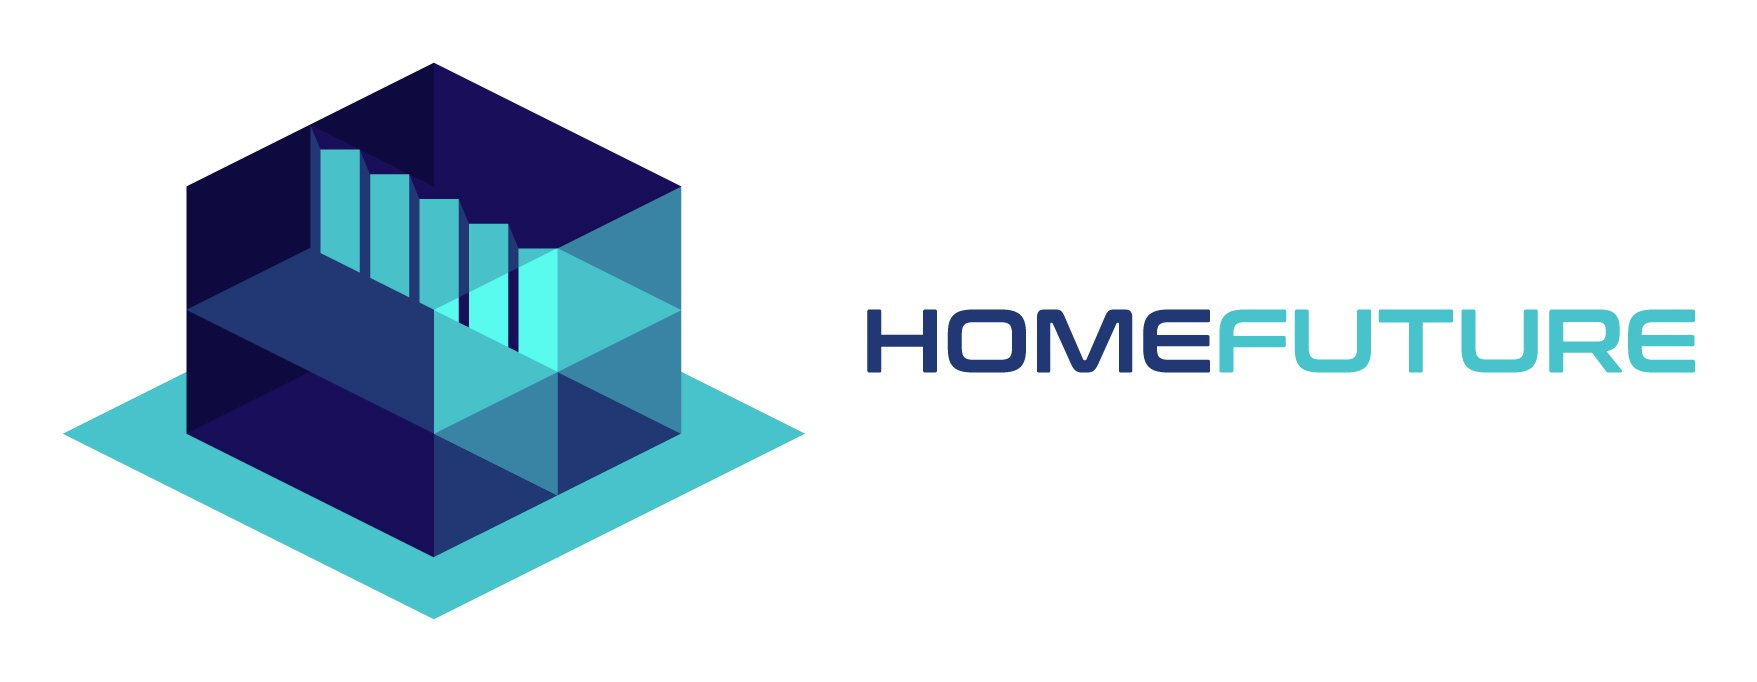 Homefuture